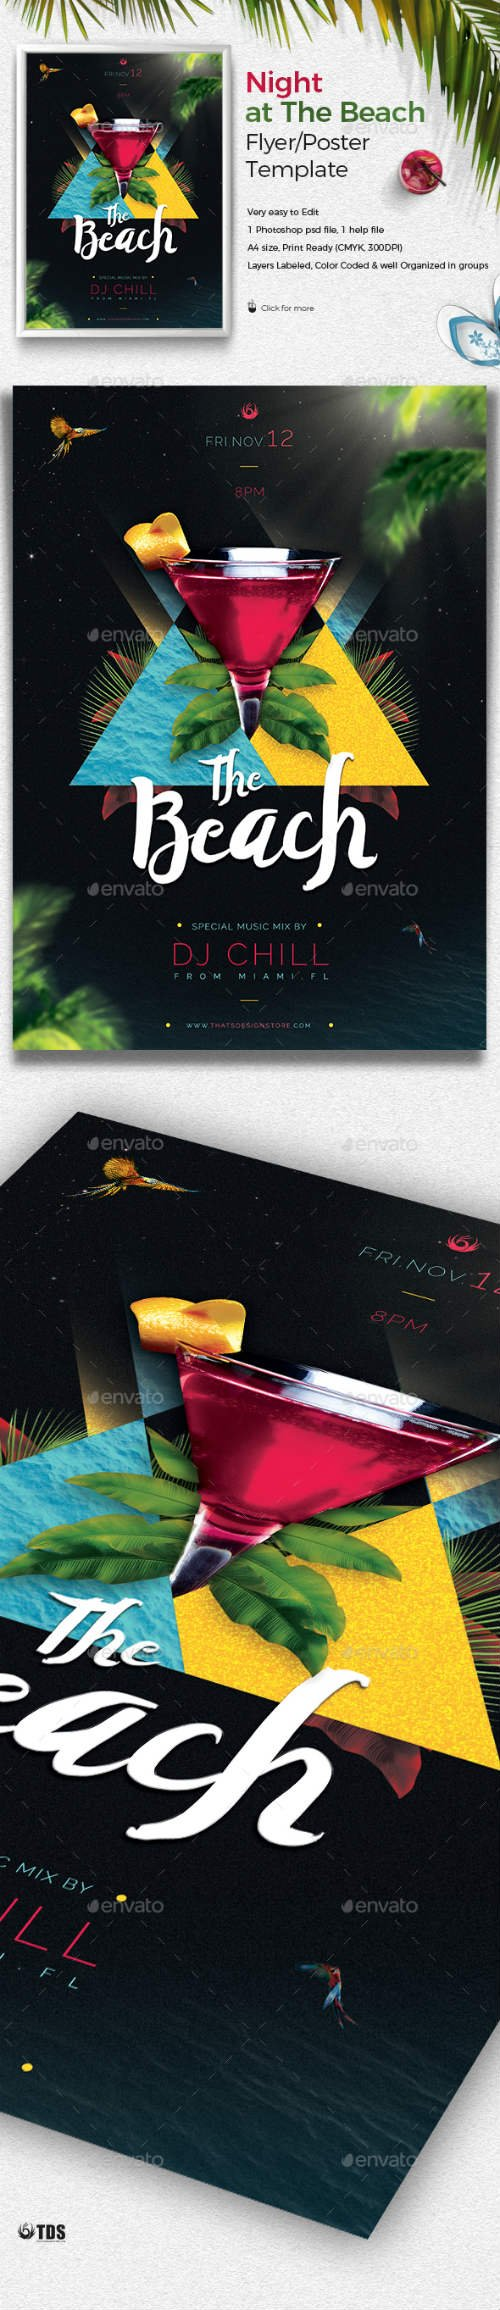 GR - Night at The Beach Flyer Template 19516780